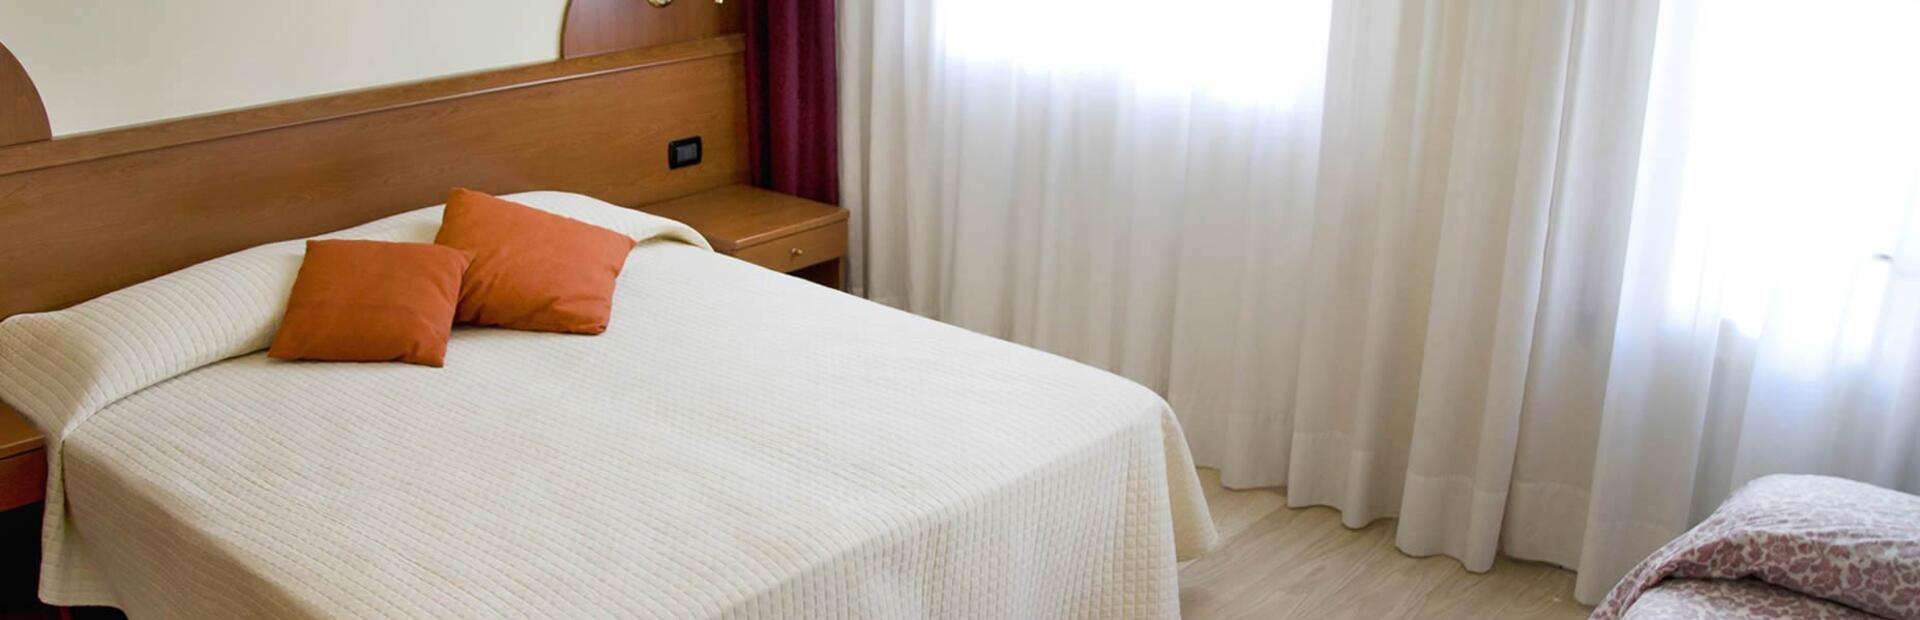 hotel-sole en triple-rooms 001